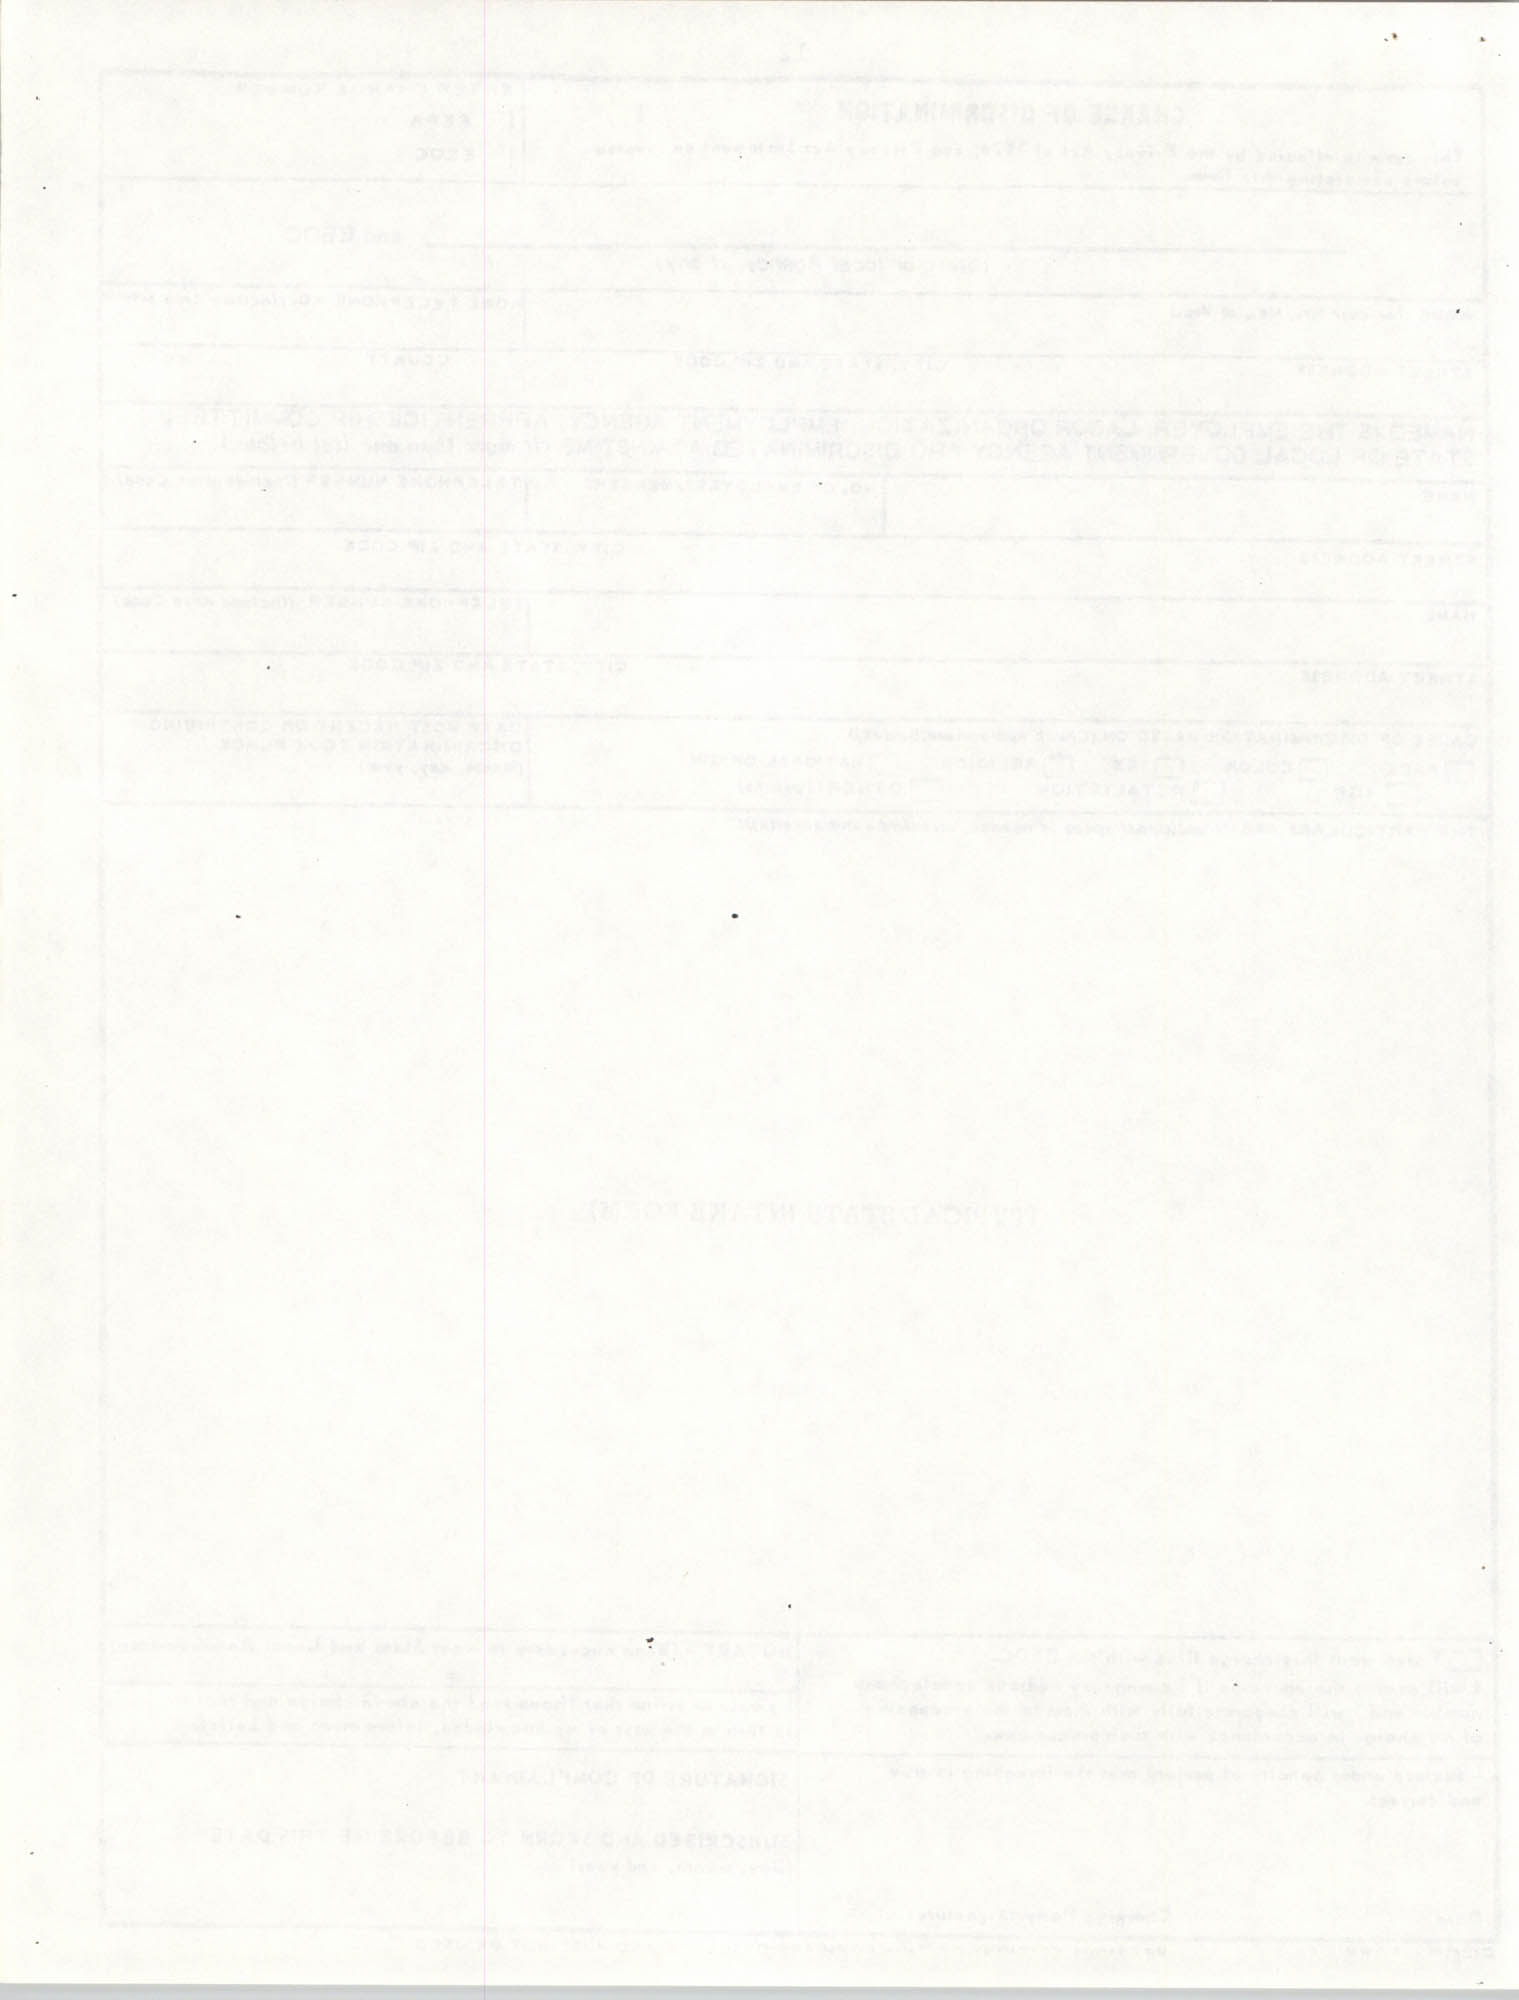 Handbook for Addressing Discrimination Complaints, NAACP Labor and Industry Committees, Blank Page